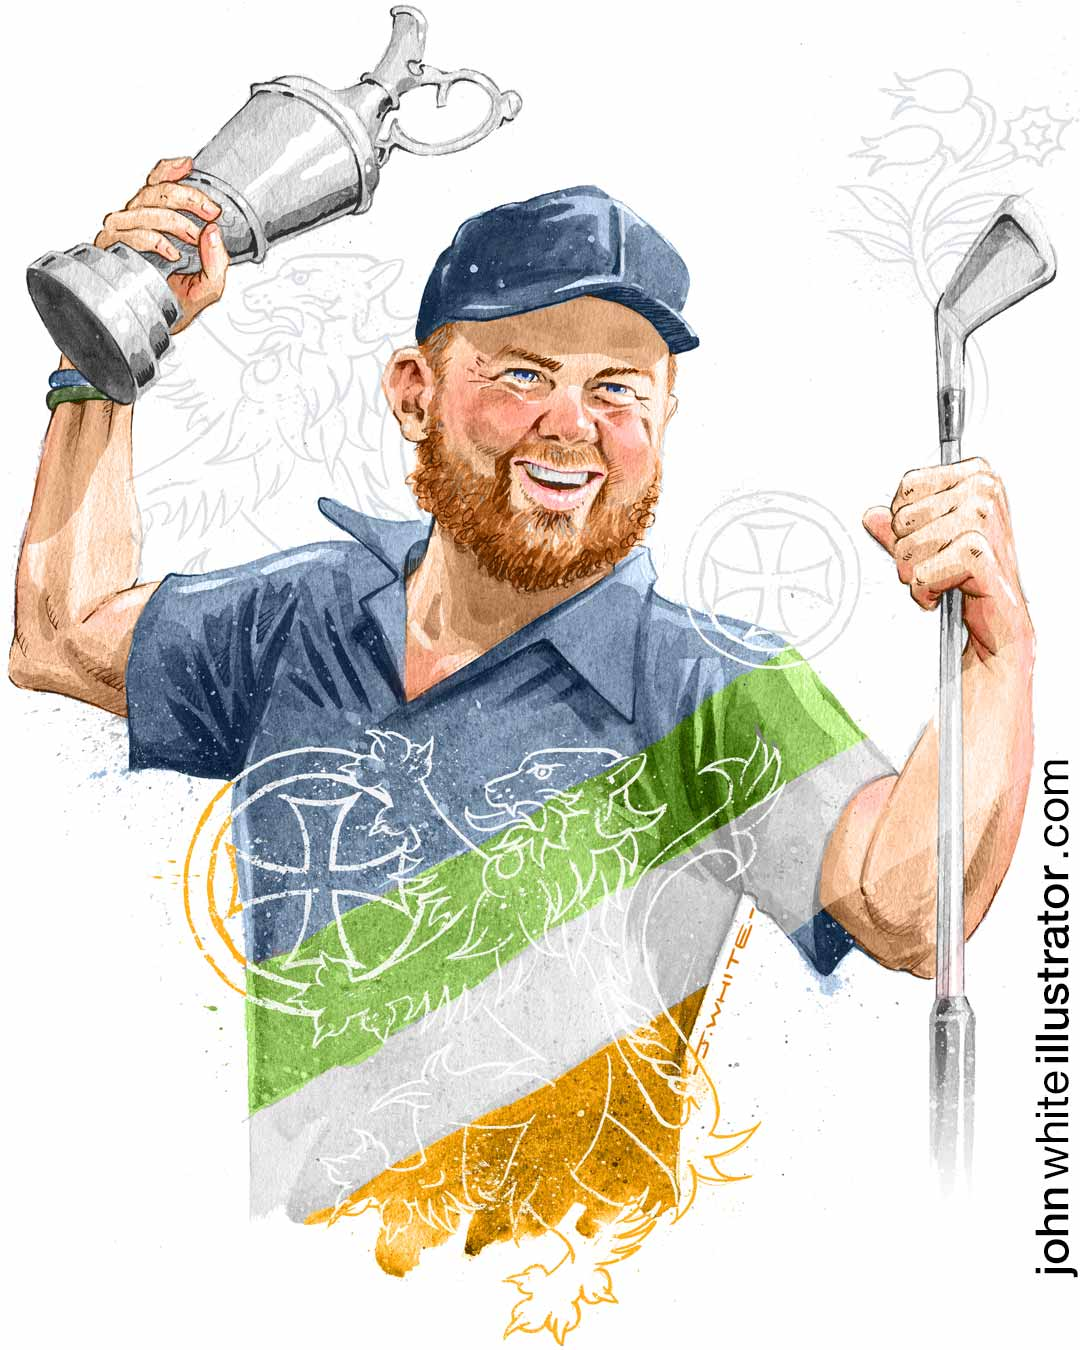 full colour editorial illustration of irish offaly tullamore golfer shane lowry